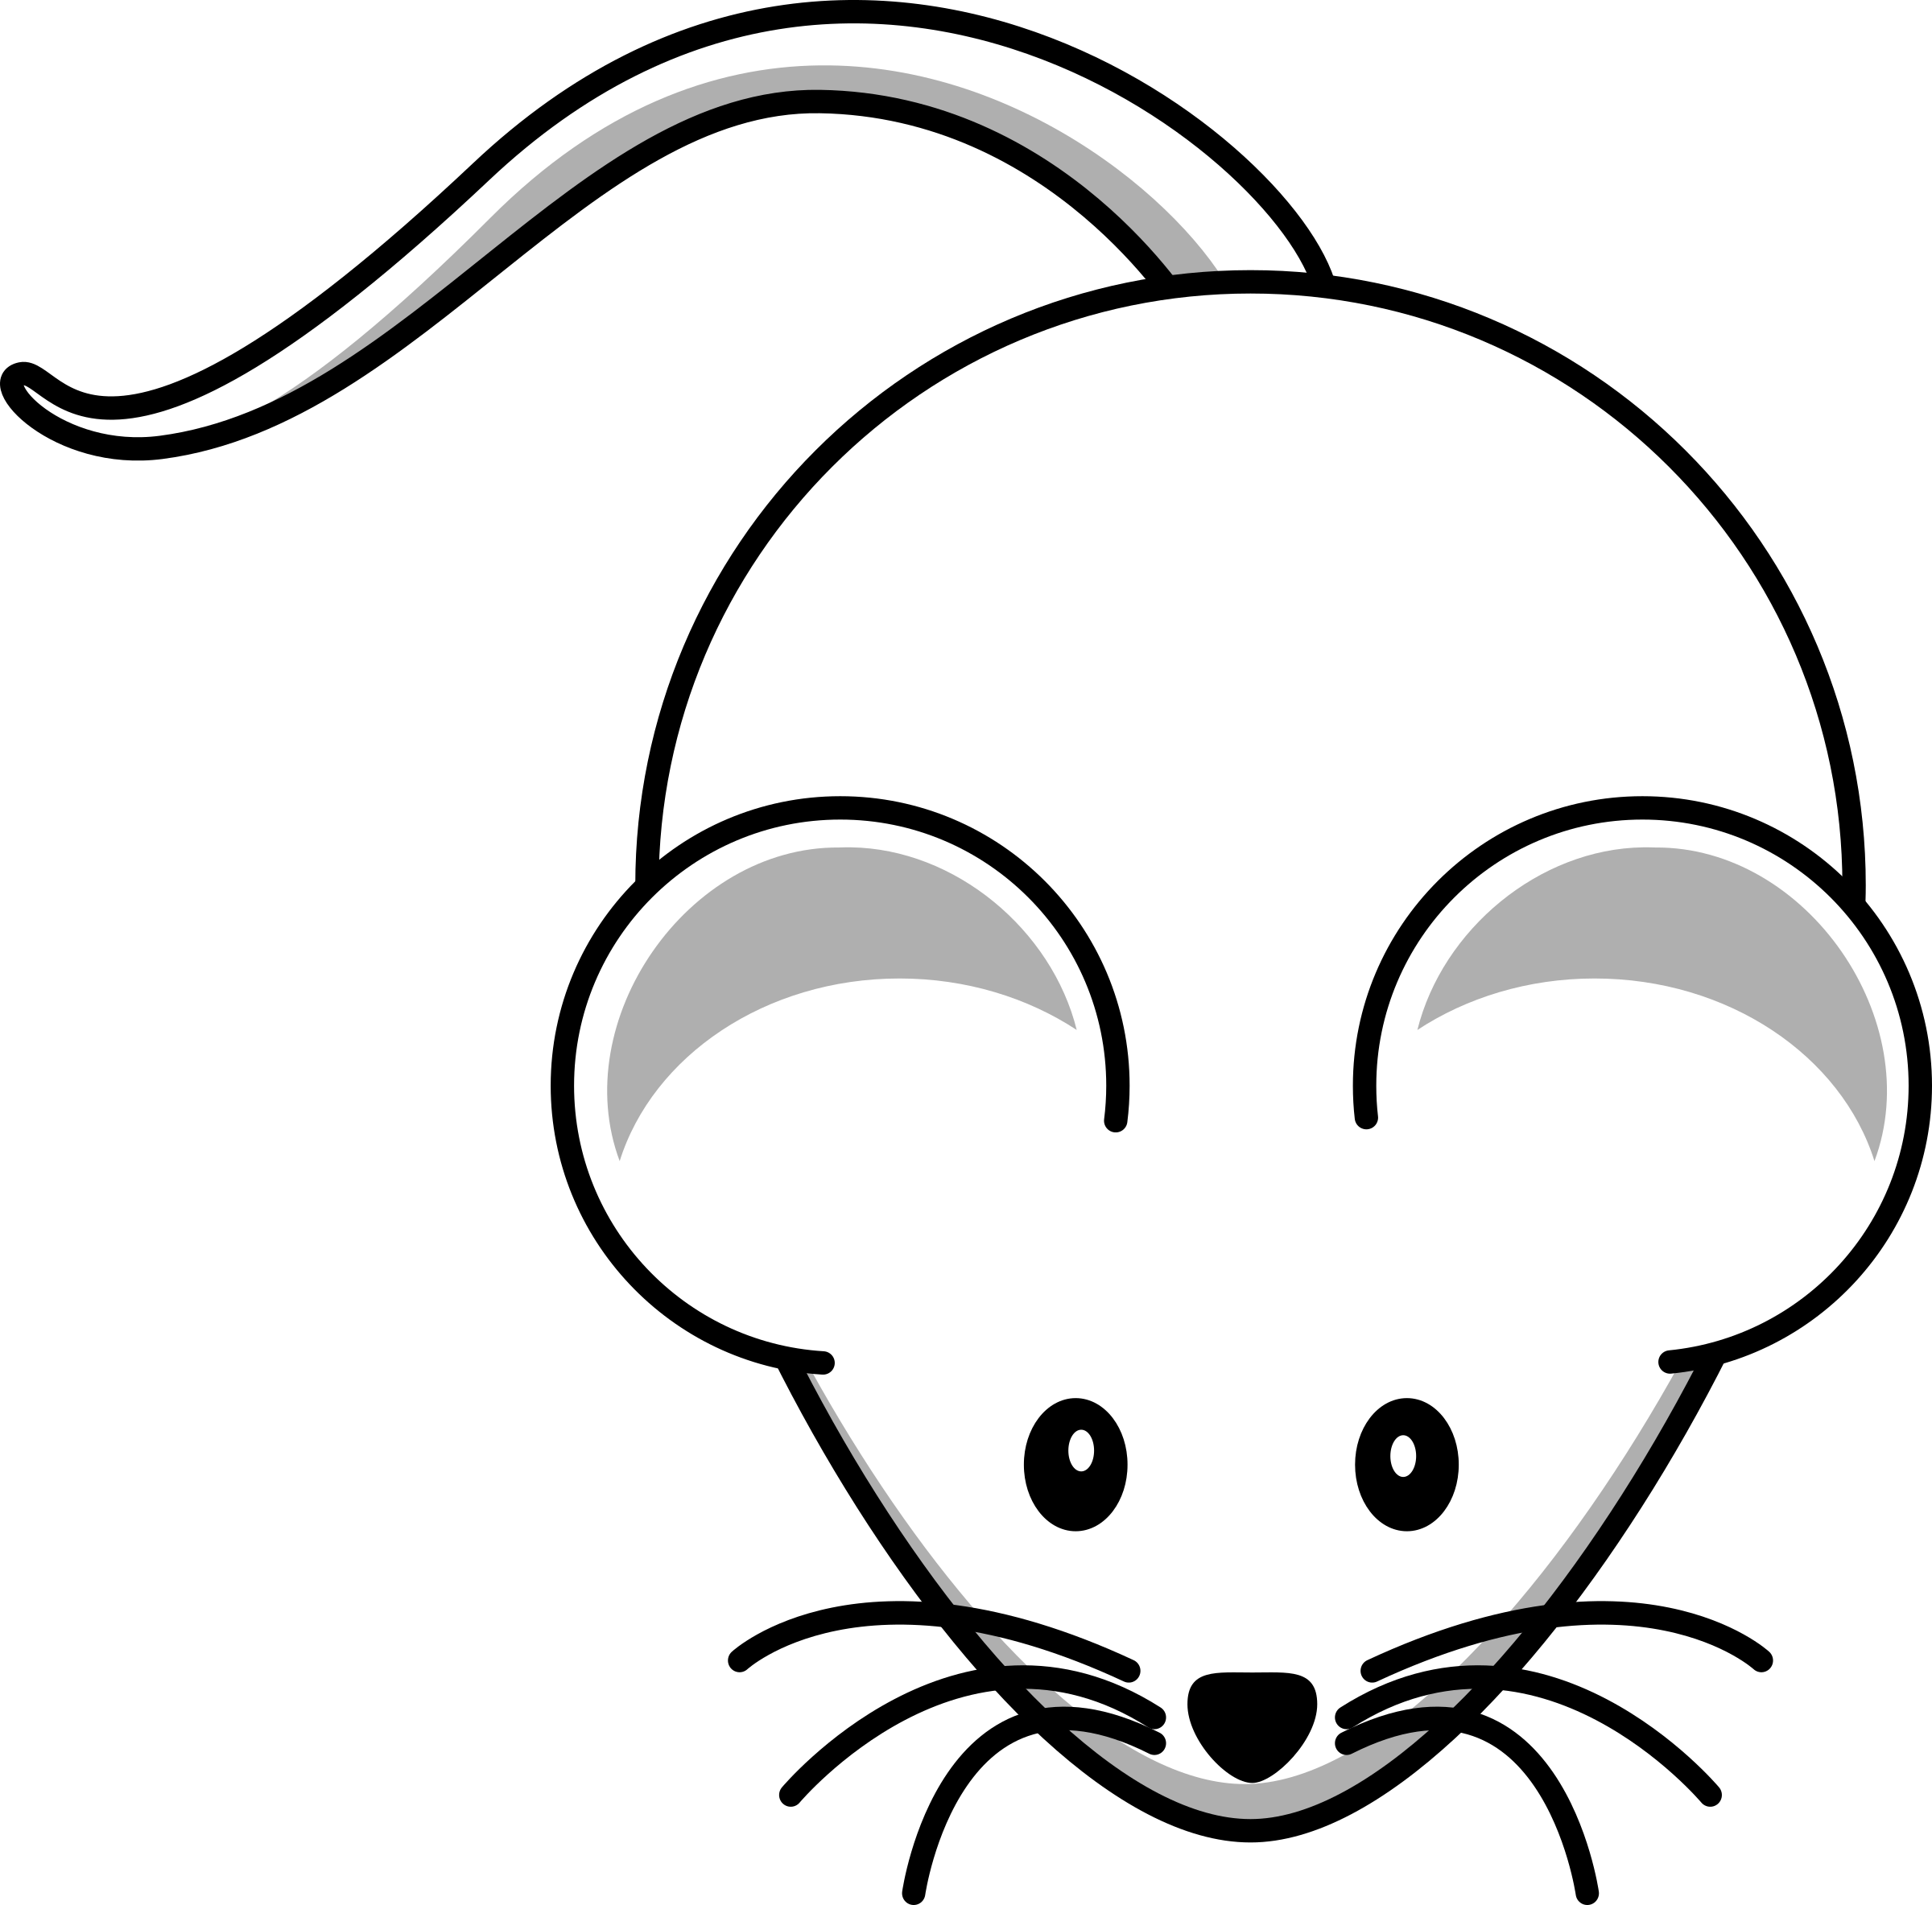 Mickey Mouse Outline Clip Art at Clker.com - vector clip art online,  royalty free & public domain